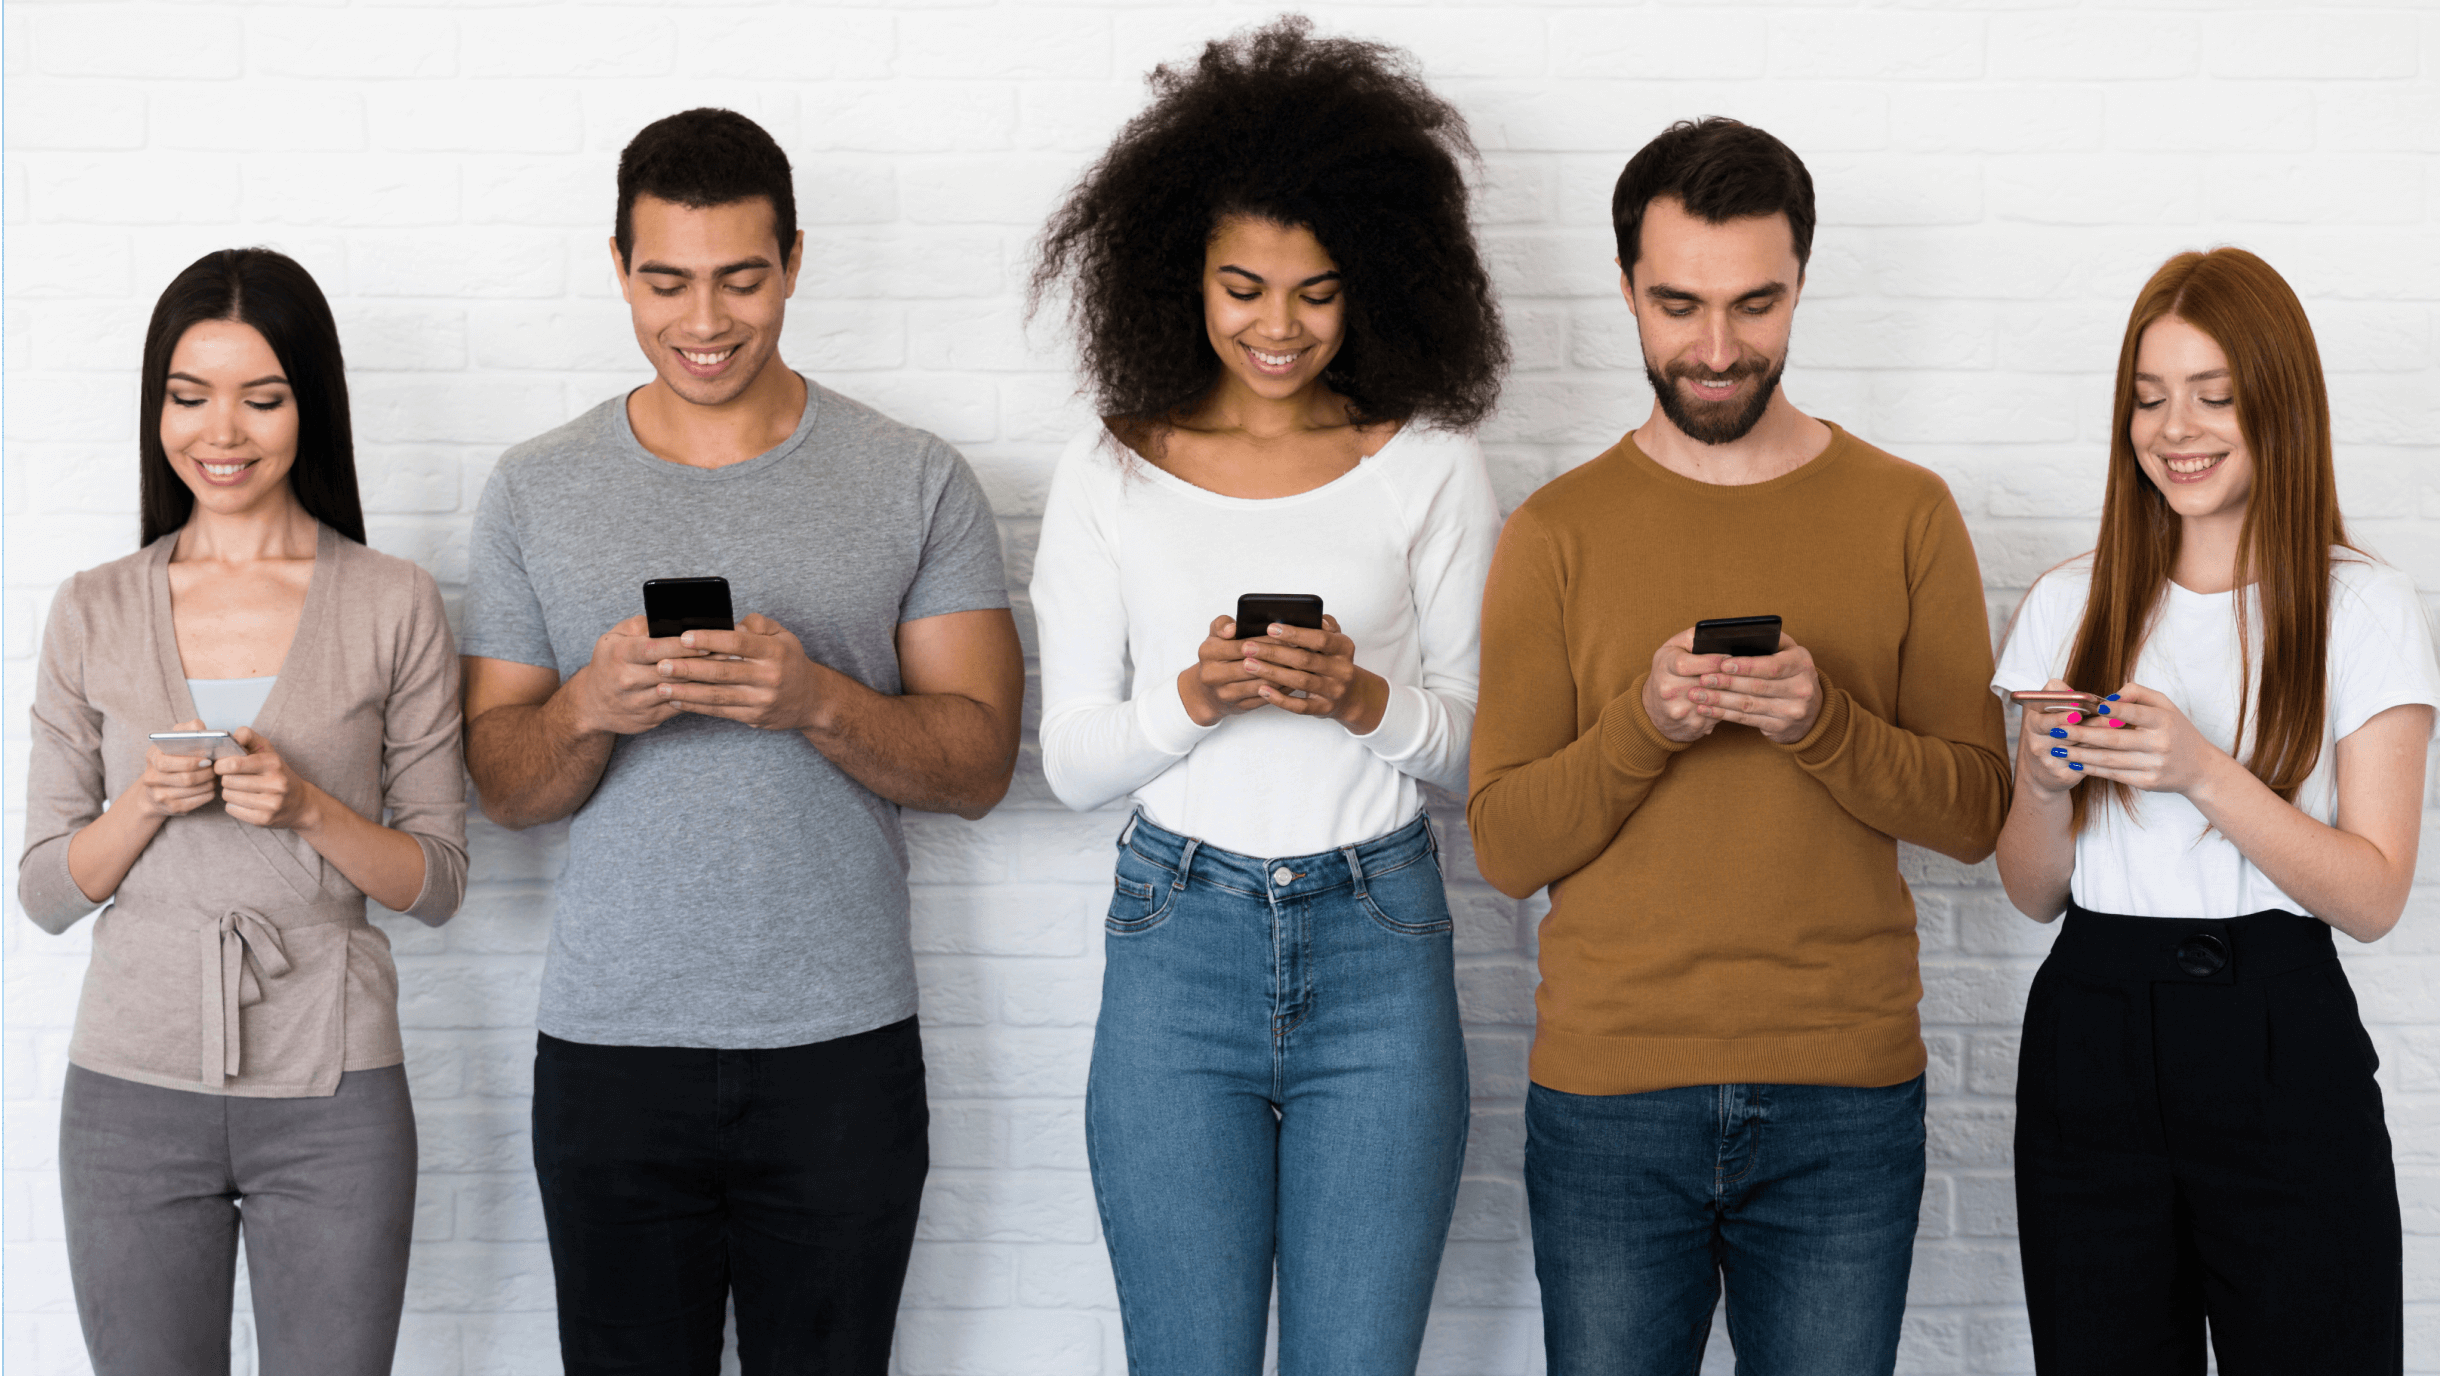 Hiring Millennials 101: Tips for Engaging the Connected Generation